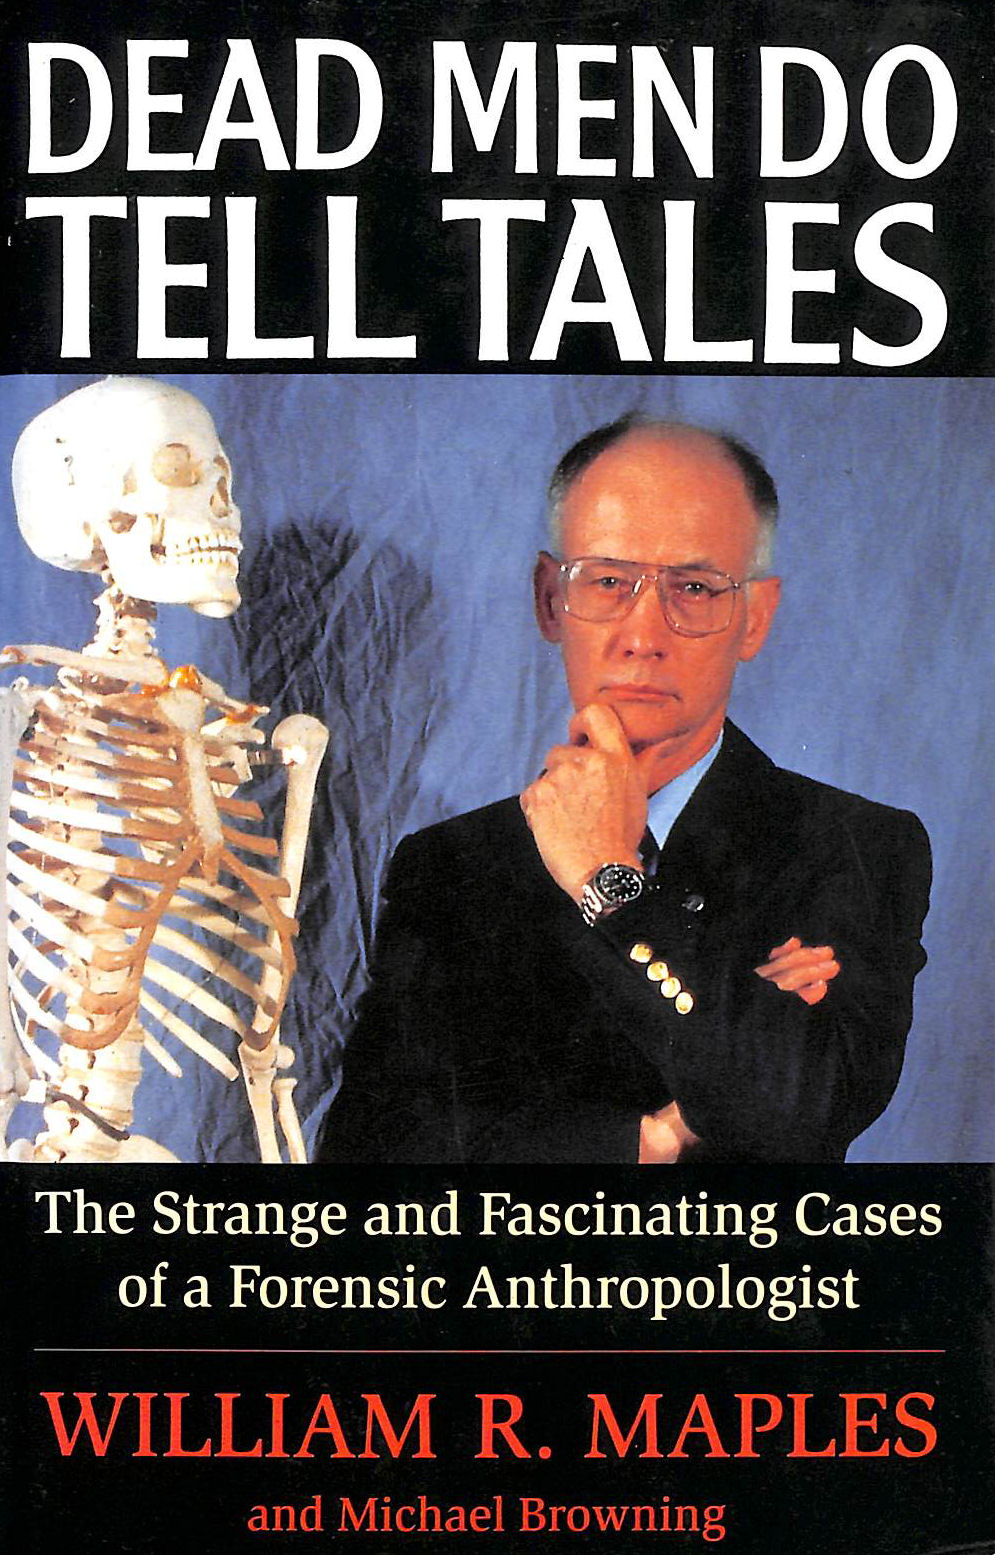 Image for Dead Men Do Tell Tales: The Strange and Fascinating Cases of a Forensic Anthropologist